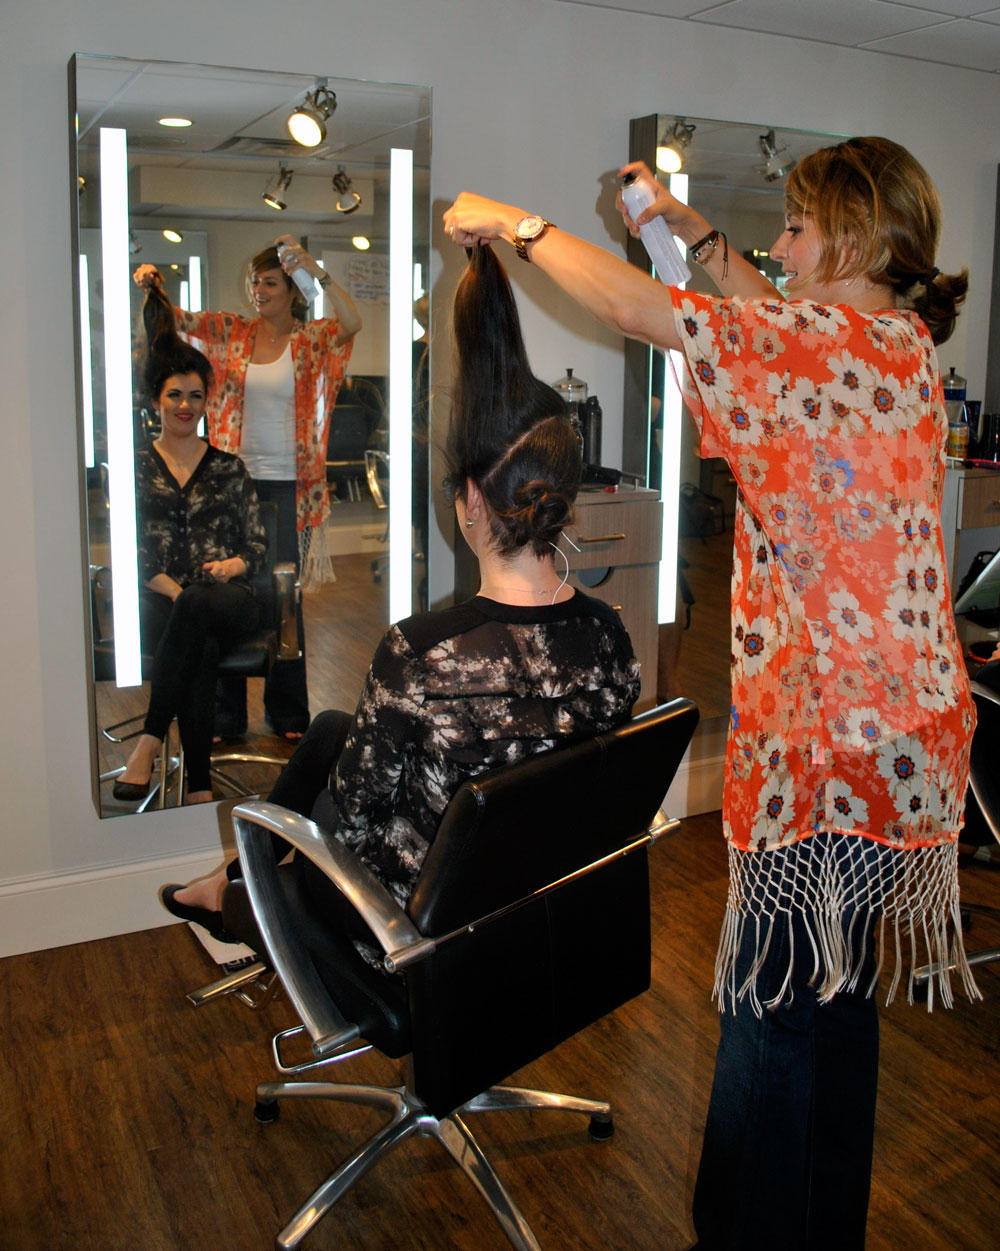 stylists practice updos during Shu Uemura education event